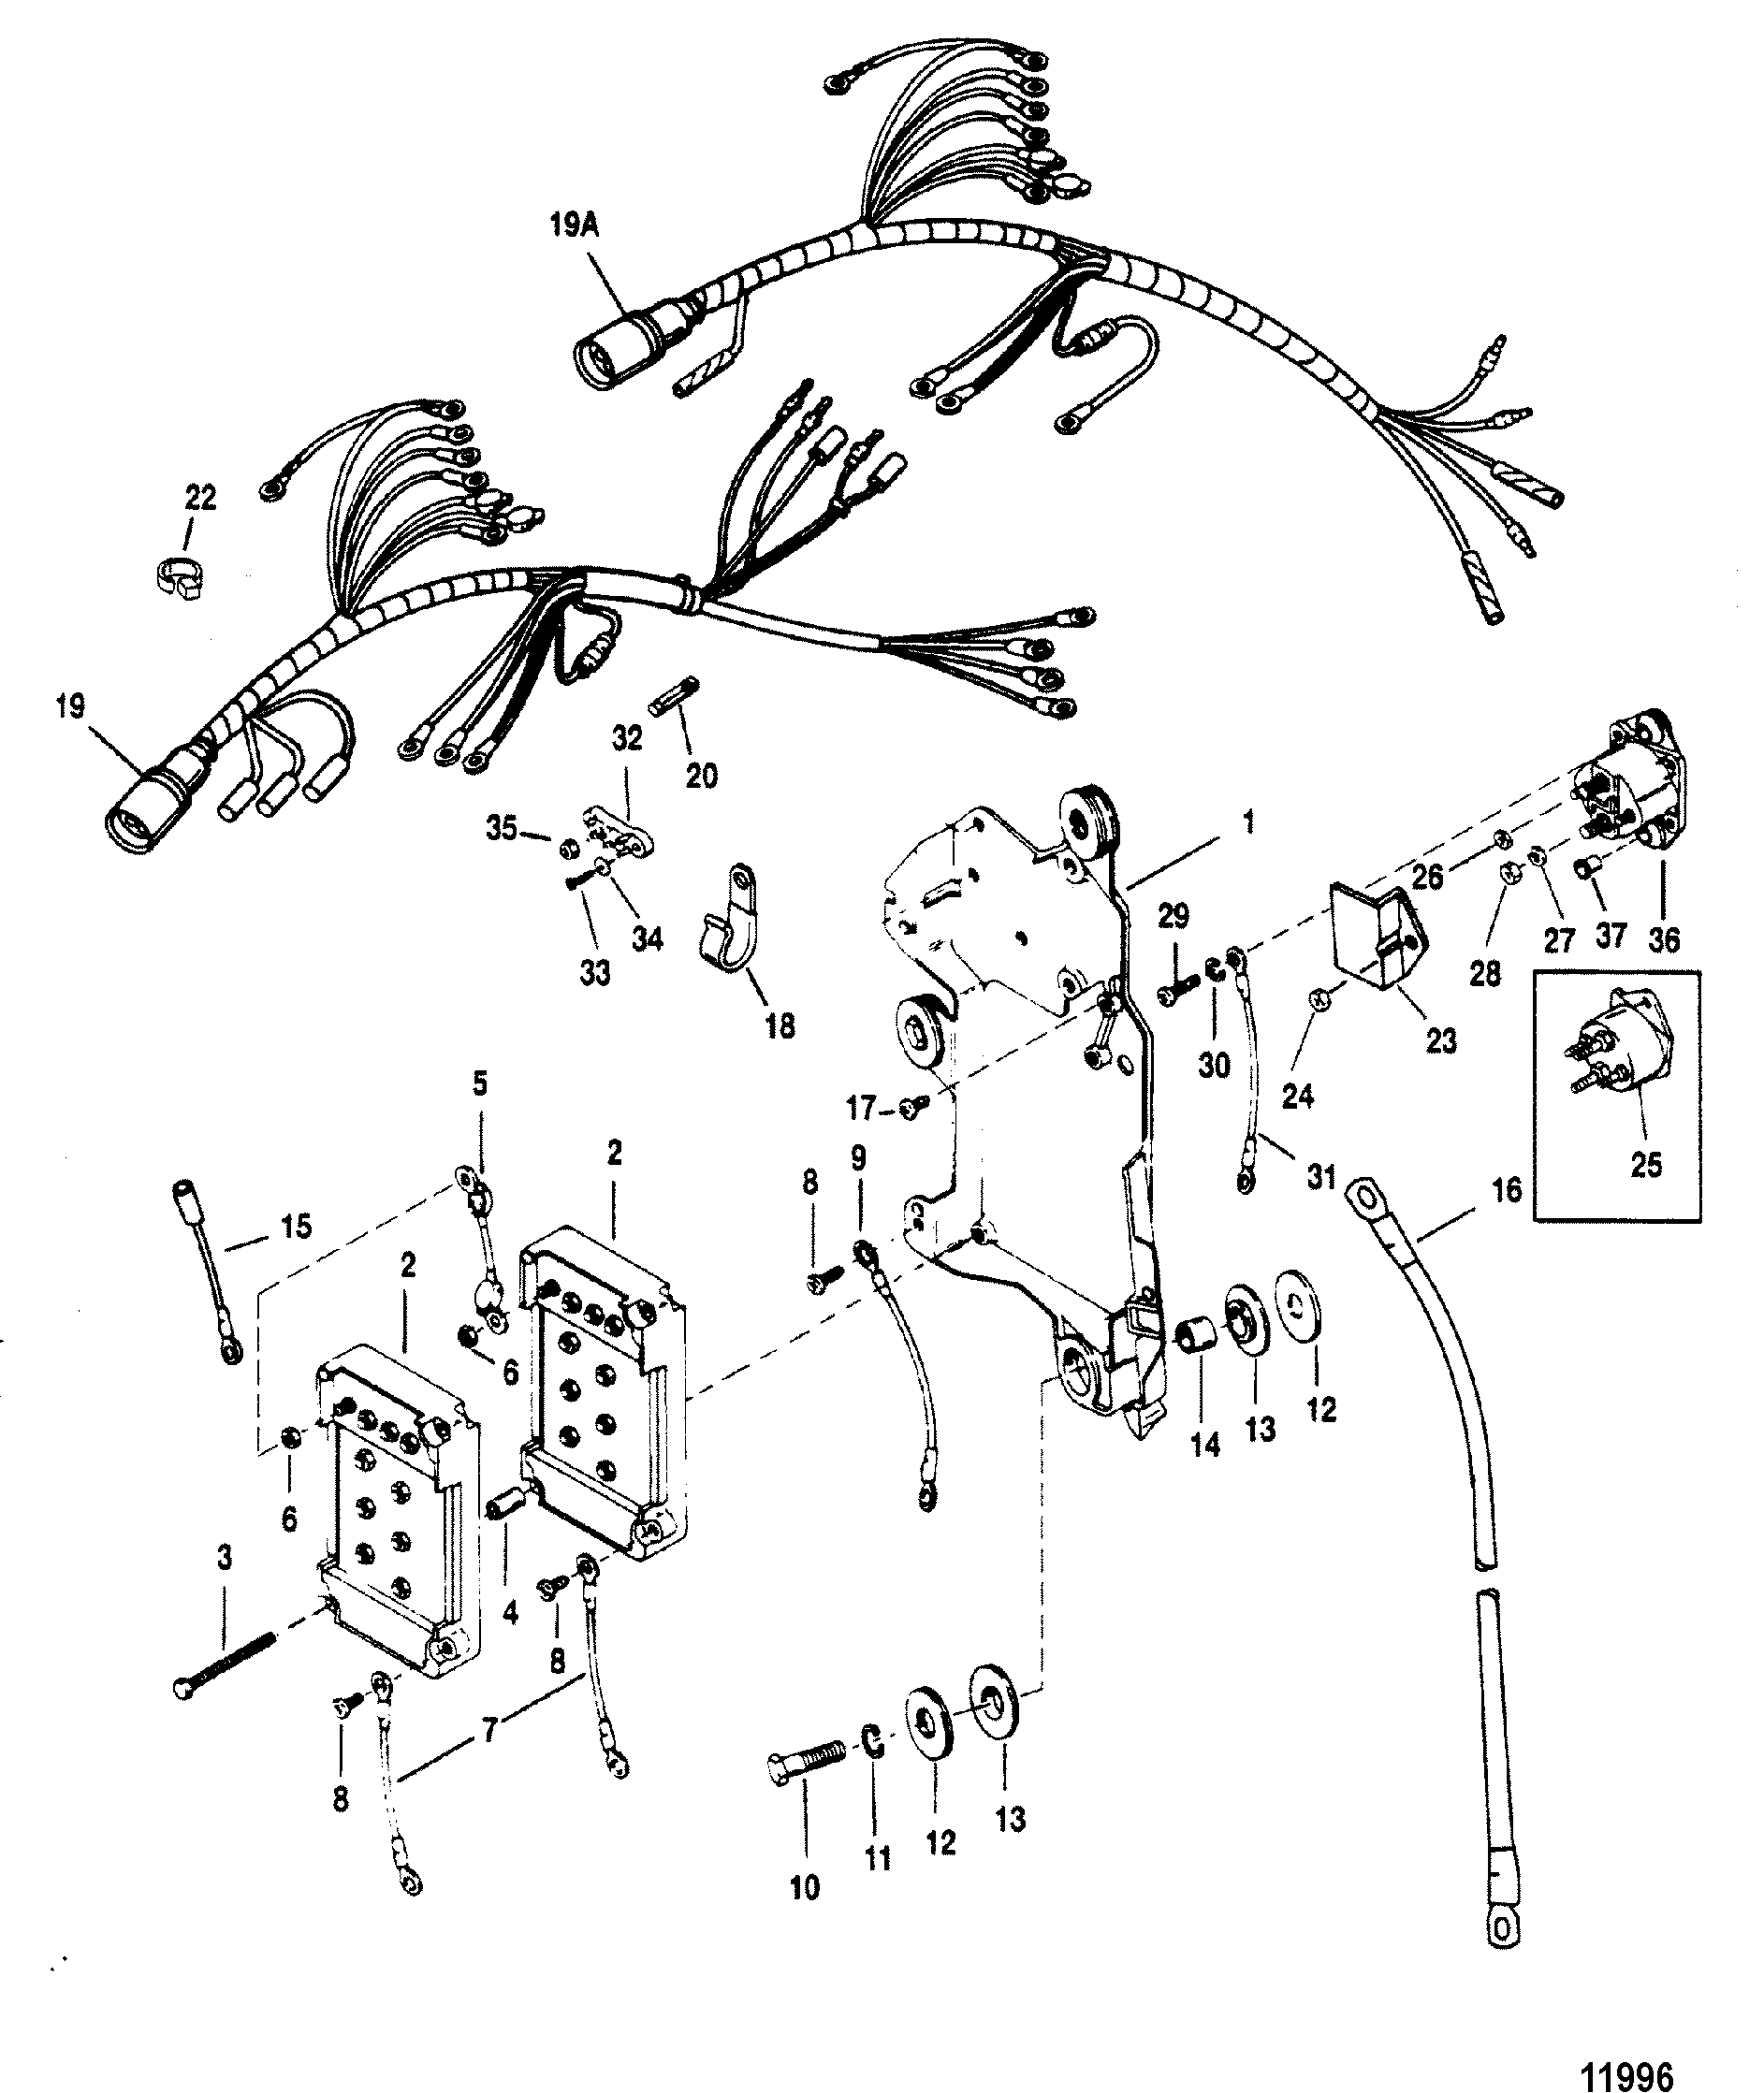 Evinrude Fuel Solenoid Wiring Diagram Apktodownload